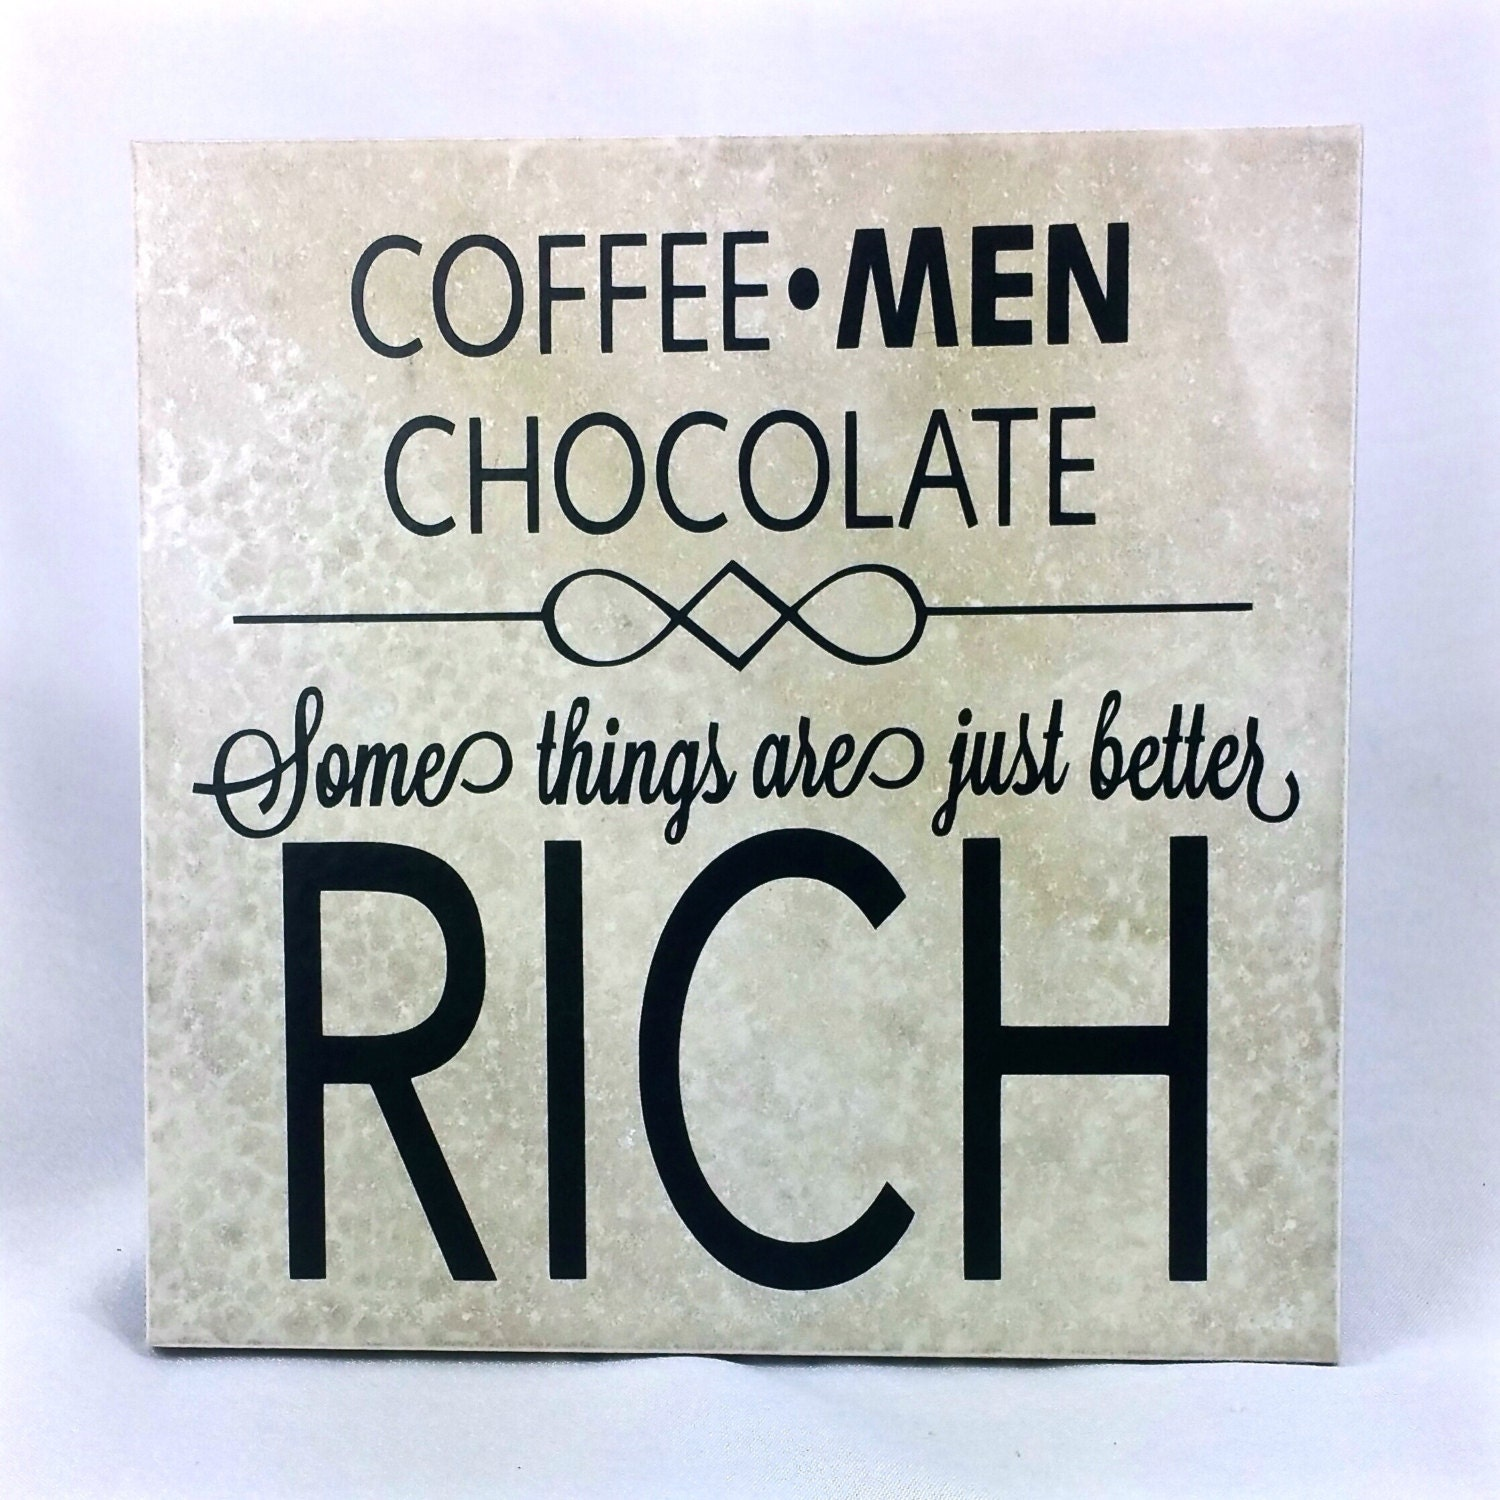 Coffee Men Chocolate Saying Quote 6 X 6 Tile With